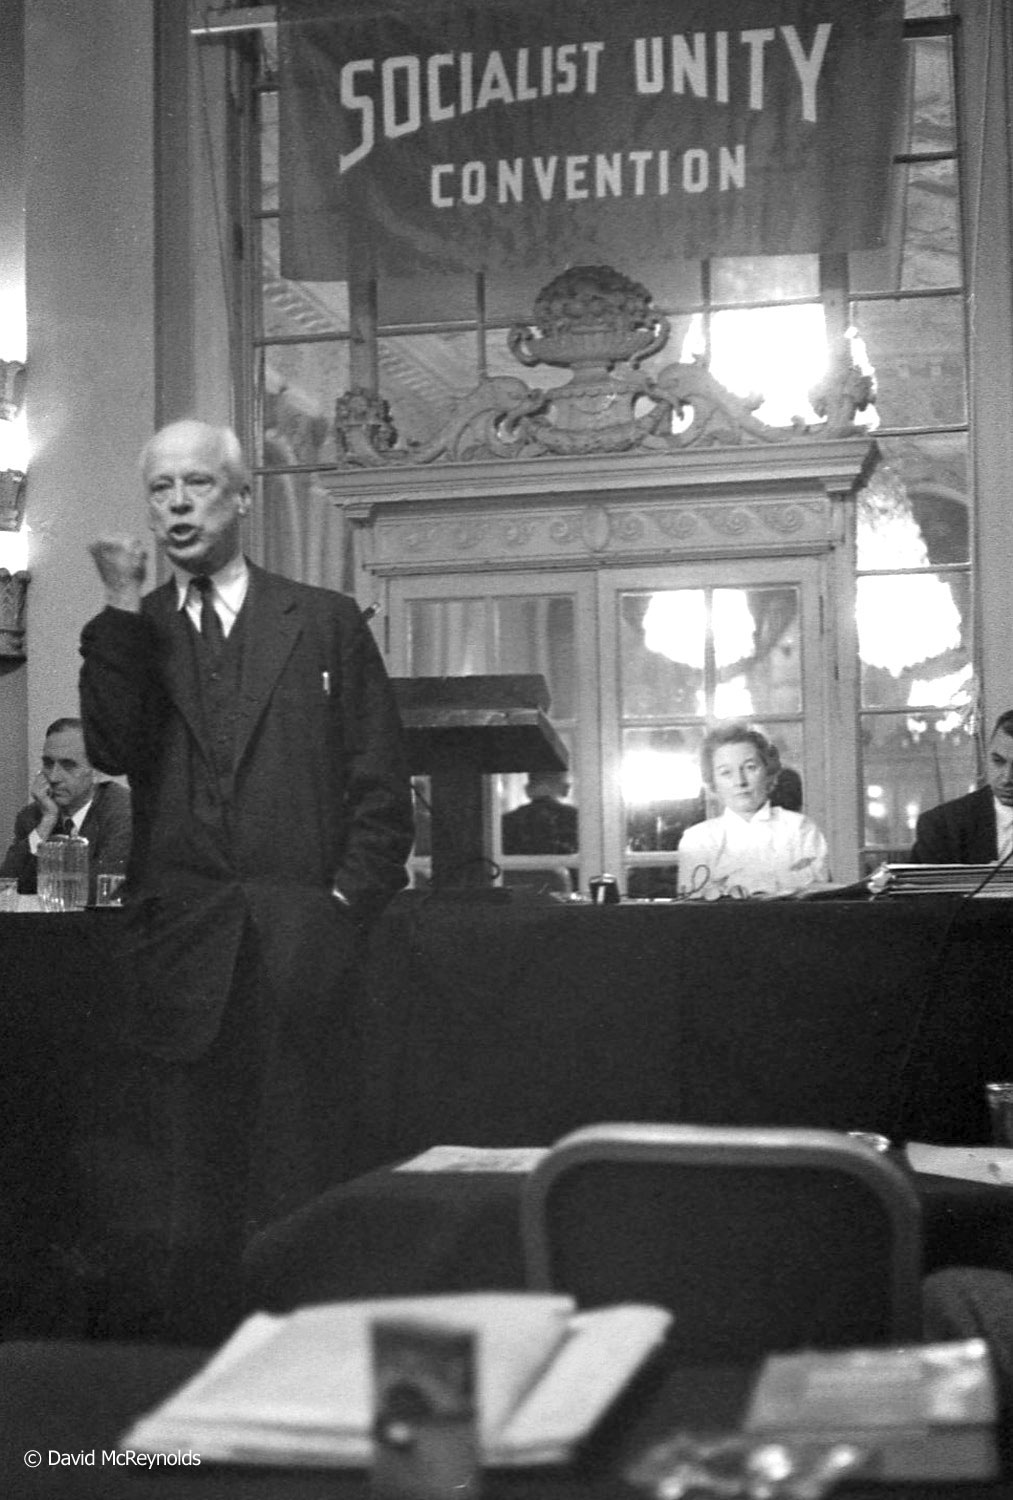 Norman Thomas (SP) speaking at the convention. (57-3)